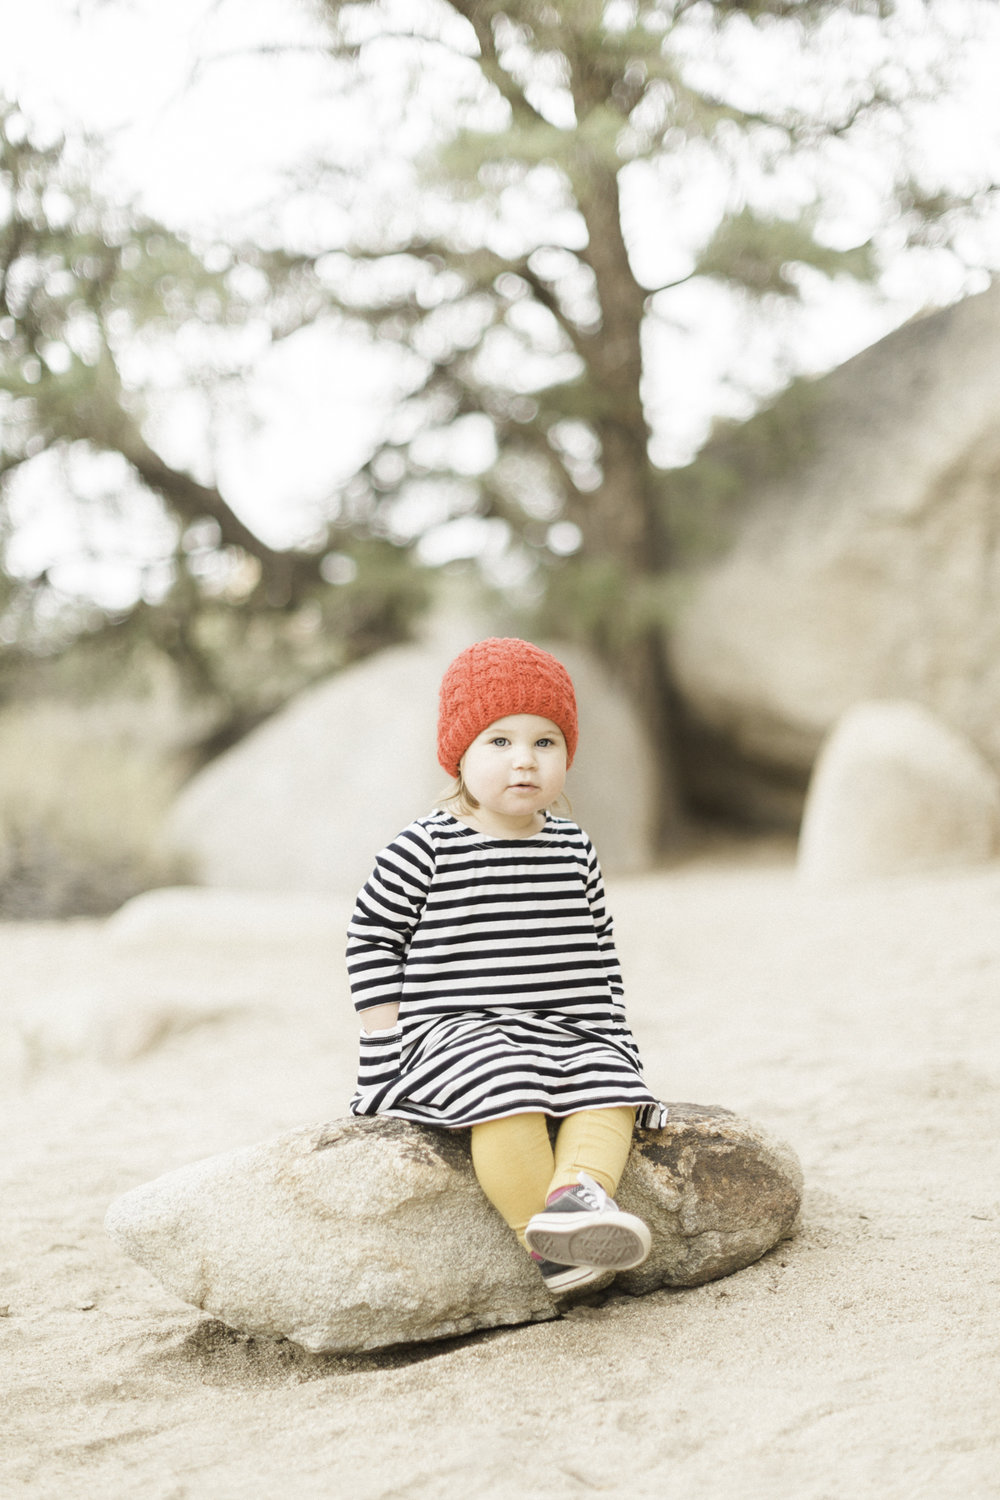 Joshua-Tree-calgary-kids-photography-shop-the-skinny-5.jpg